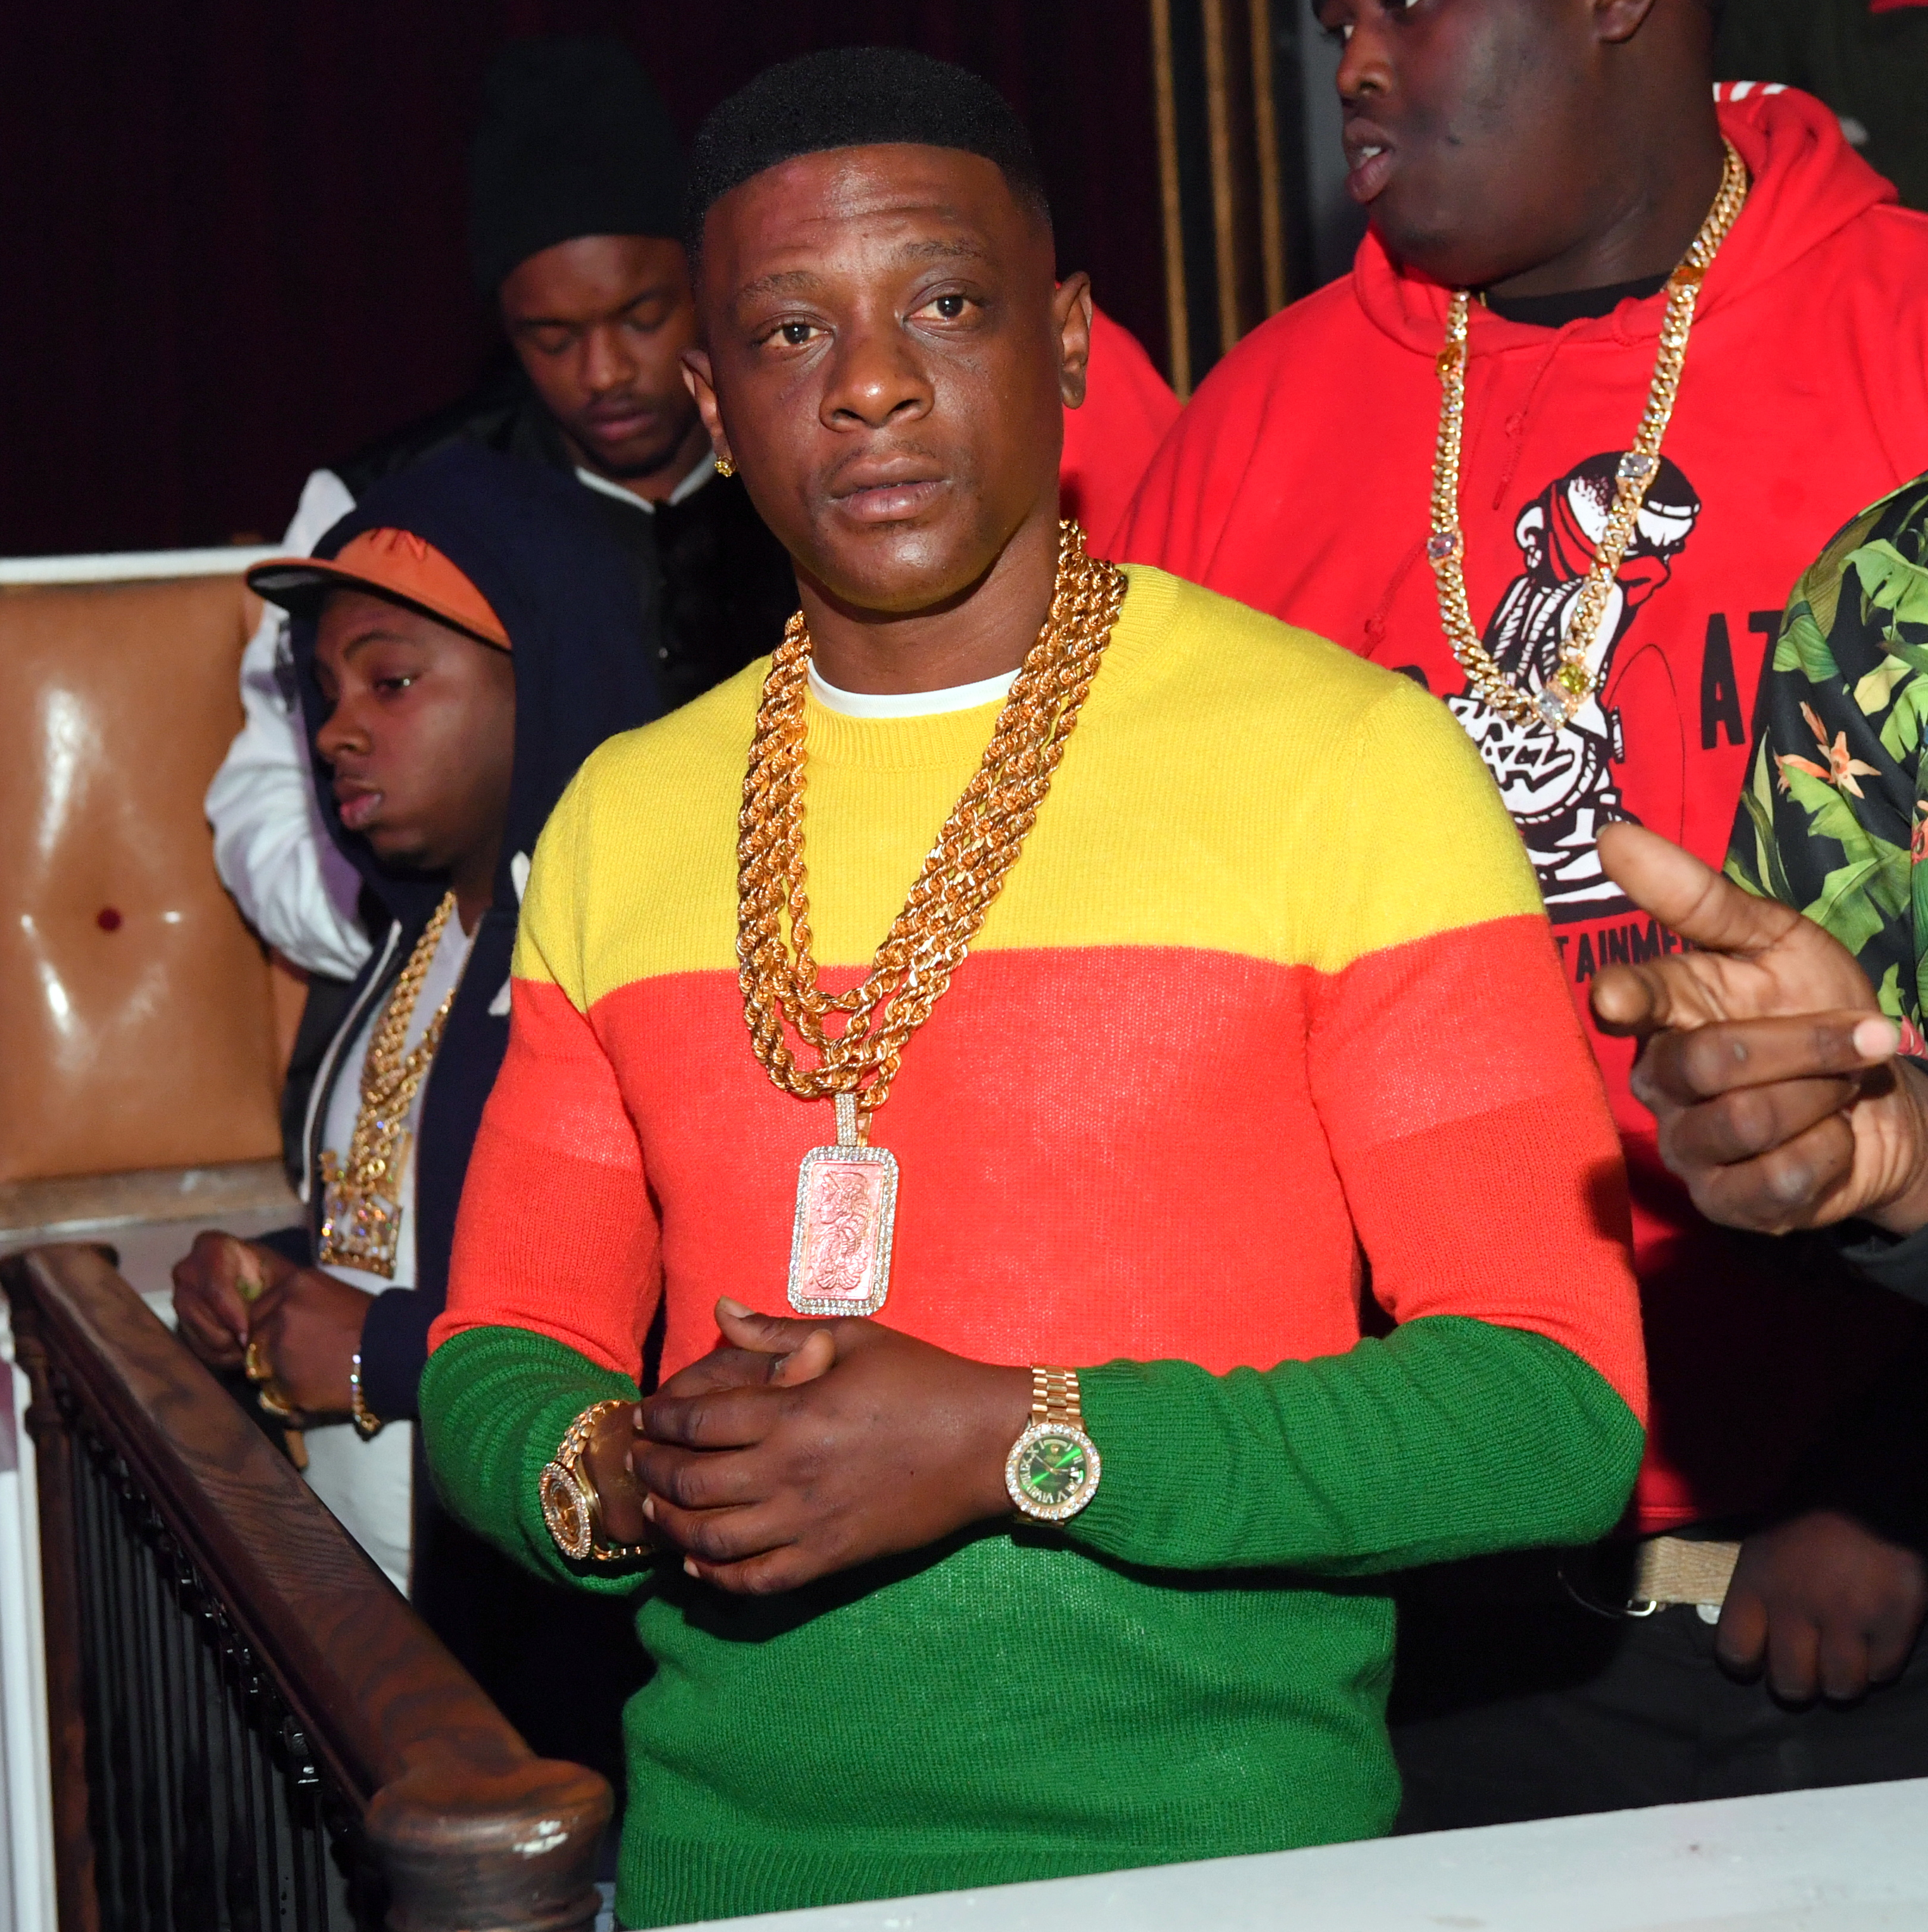 Boosie Host Saints vs Falcons Game After Party